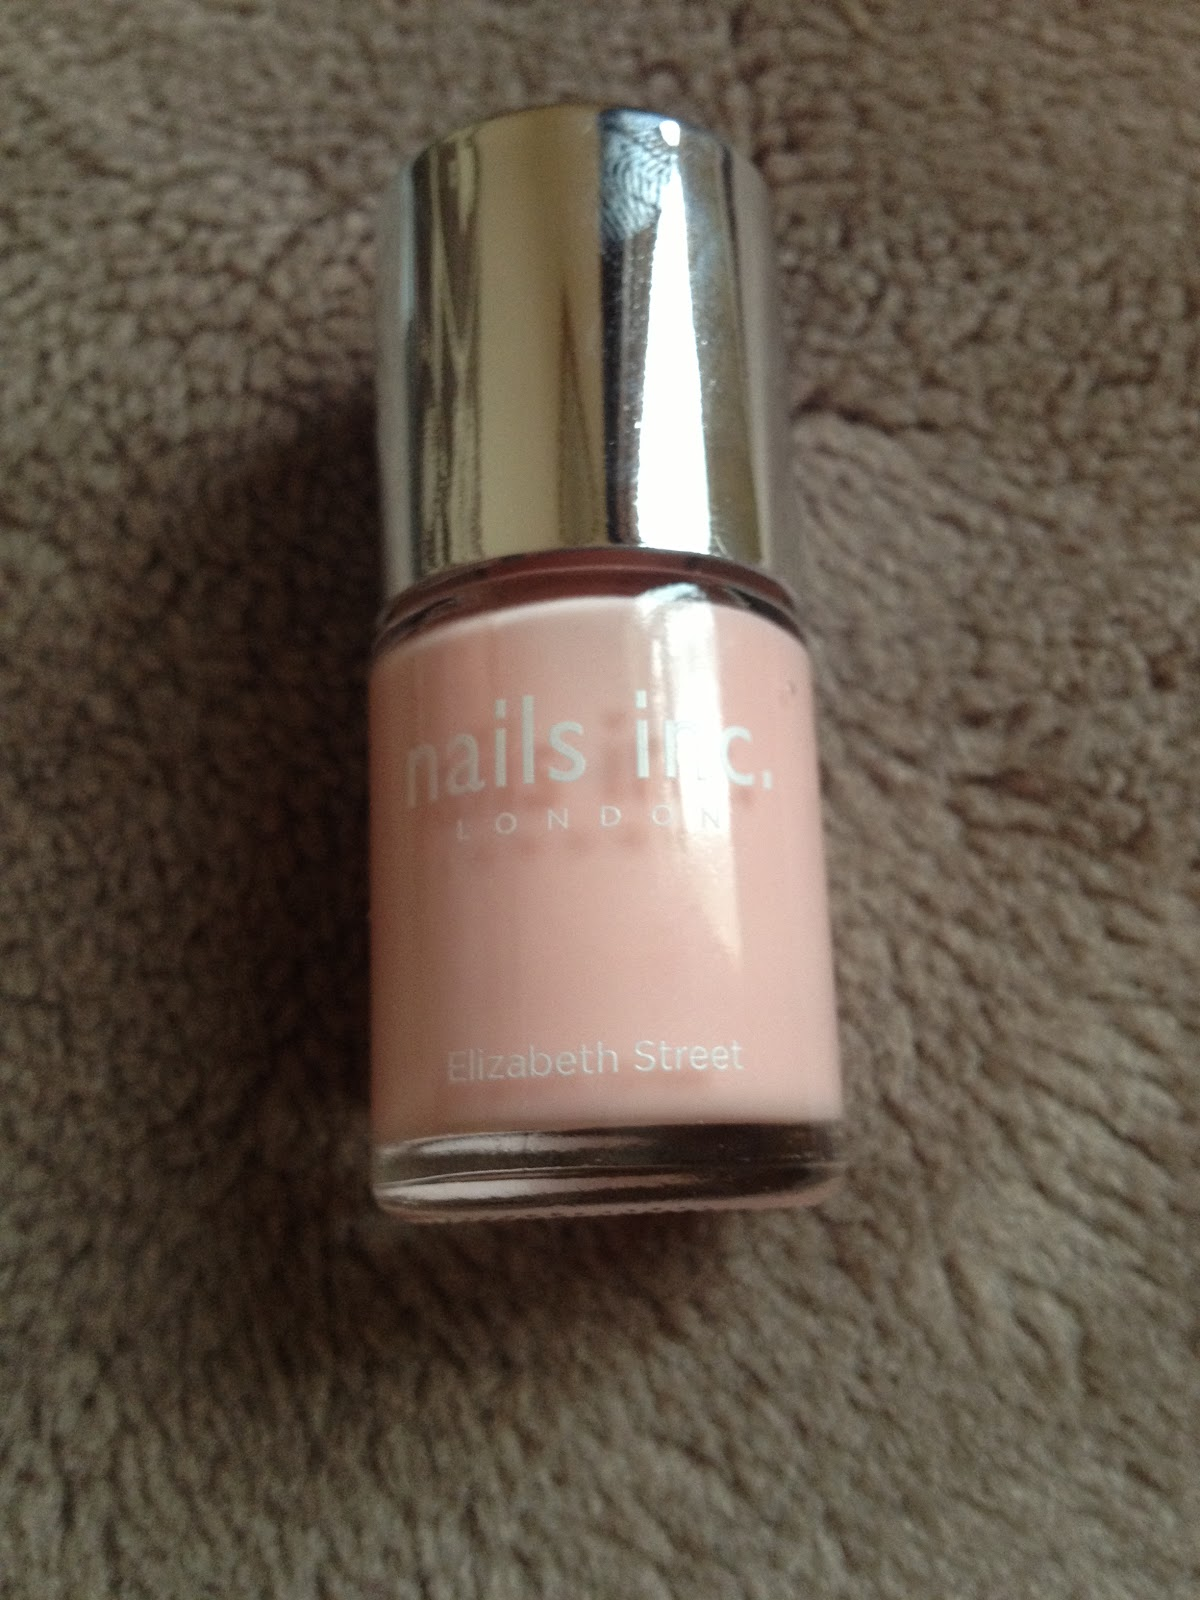 shopuntilyoudrop: FREE Nails Inc with Glamour Magazine and loads of ...